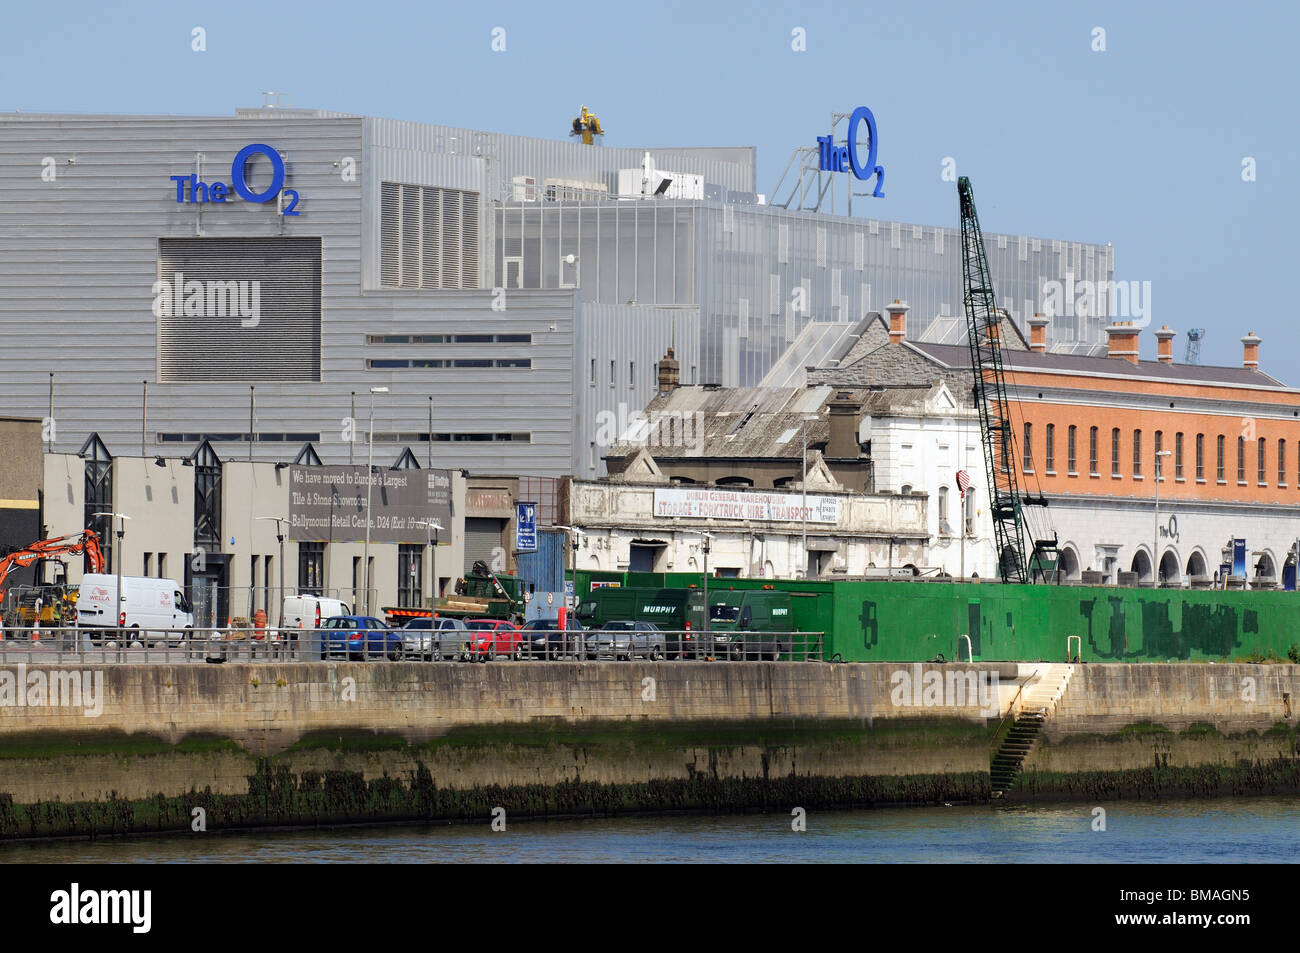 The O2 Theatre in the Docklands area of Dublin waterfront - Stock Image